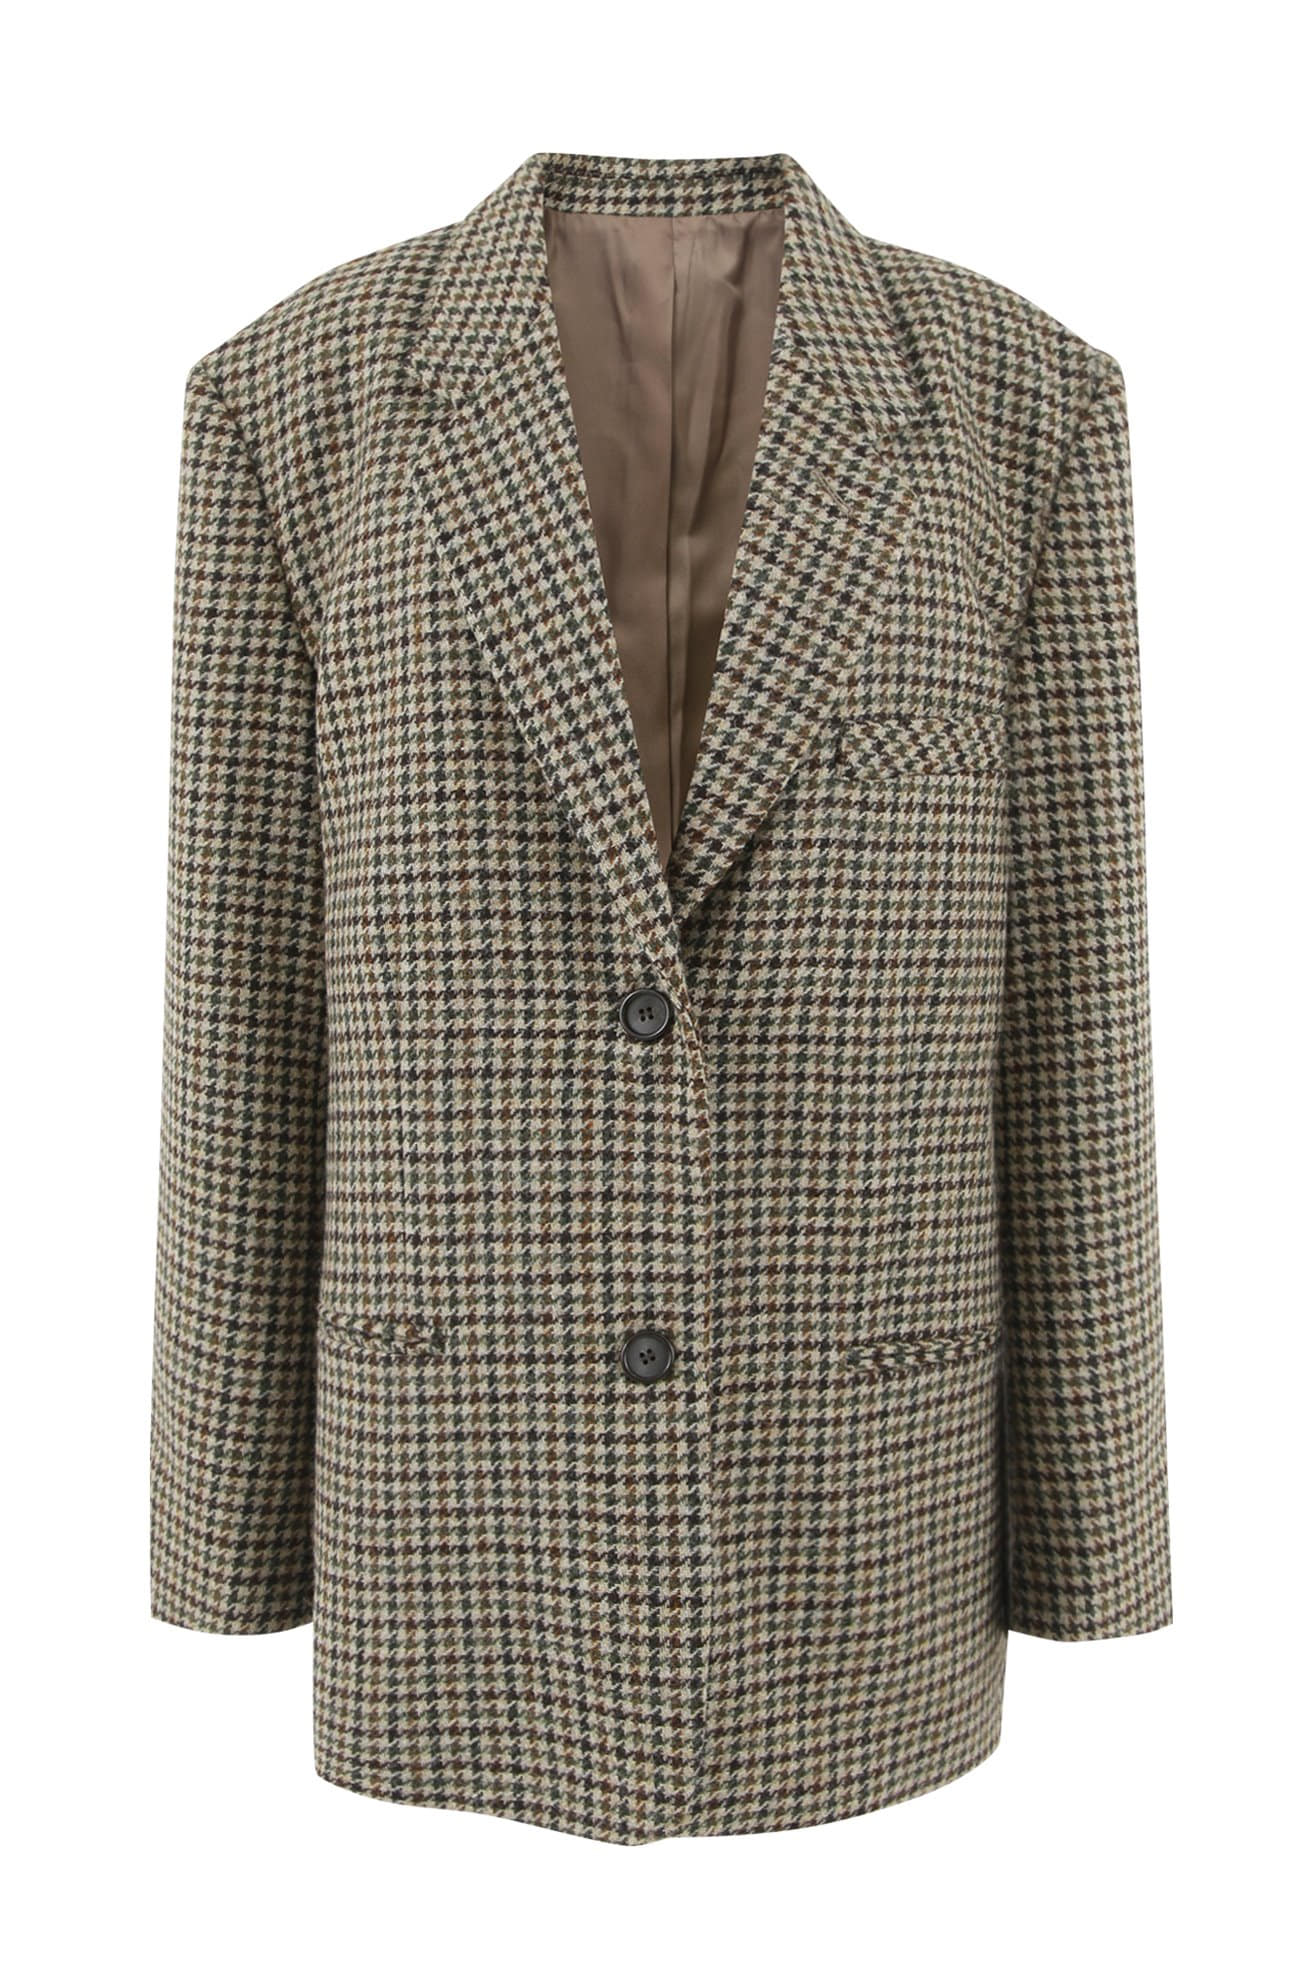 Oversized houndstooth blazer (BROWN CHECK)